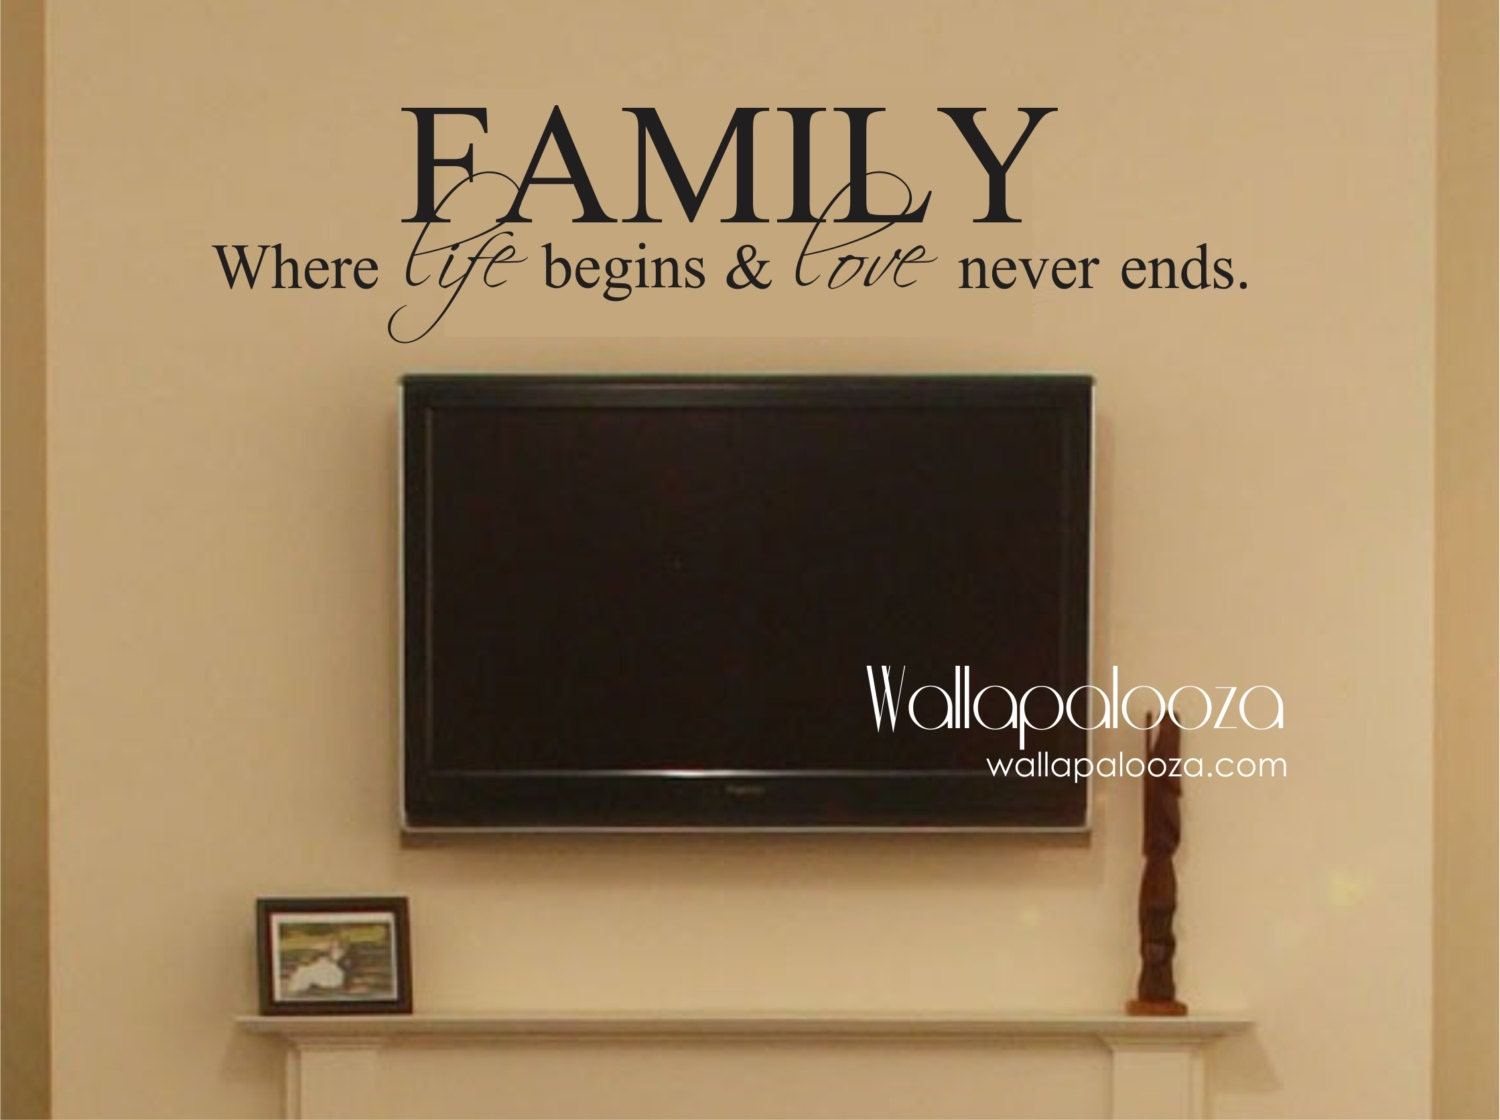 Family Wall Decor Family Where Life Begins And Love Never Ends Family Wall Decal